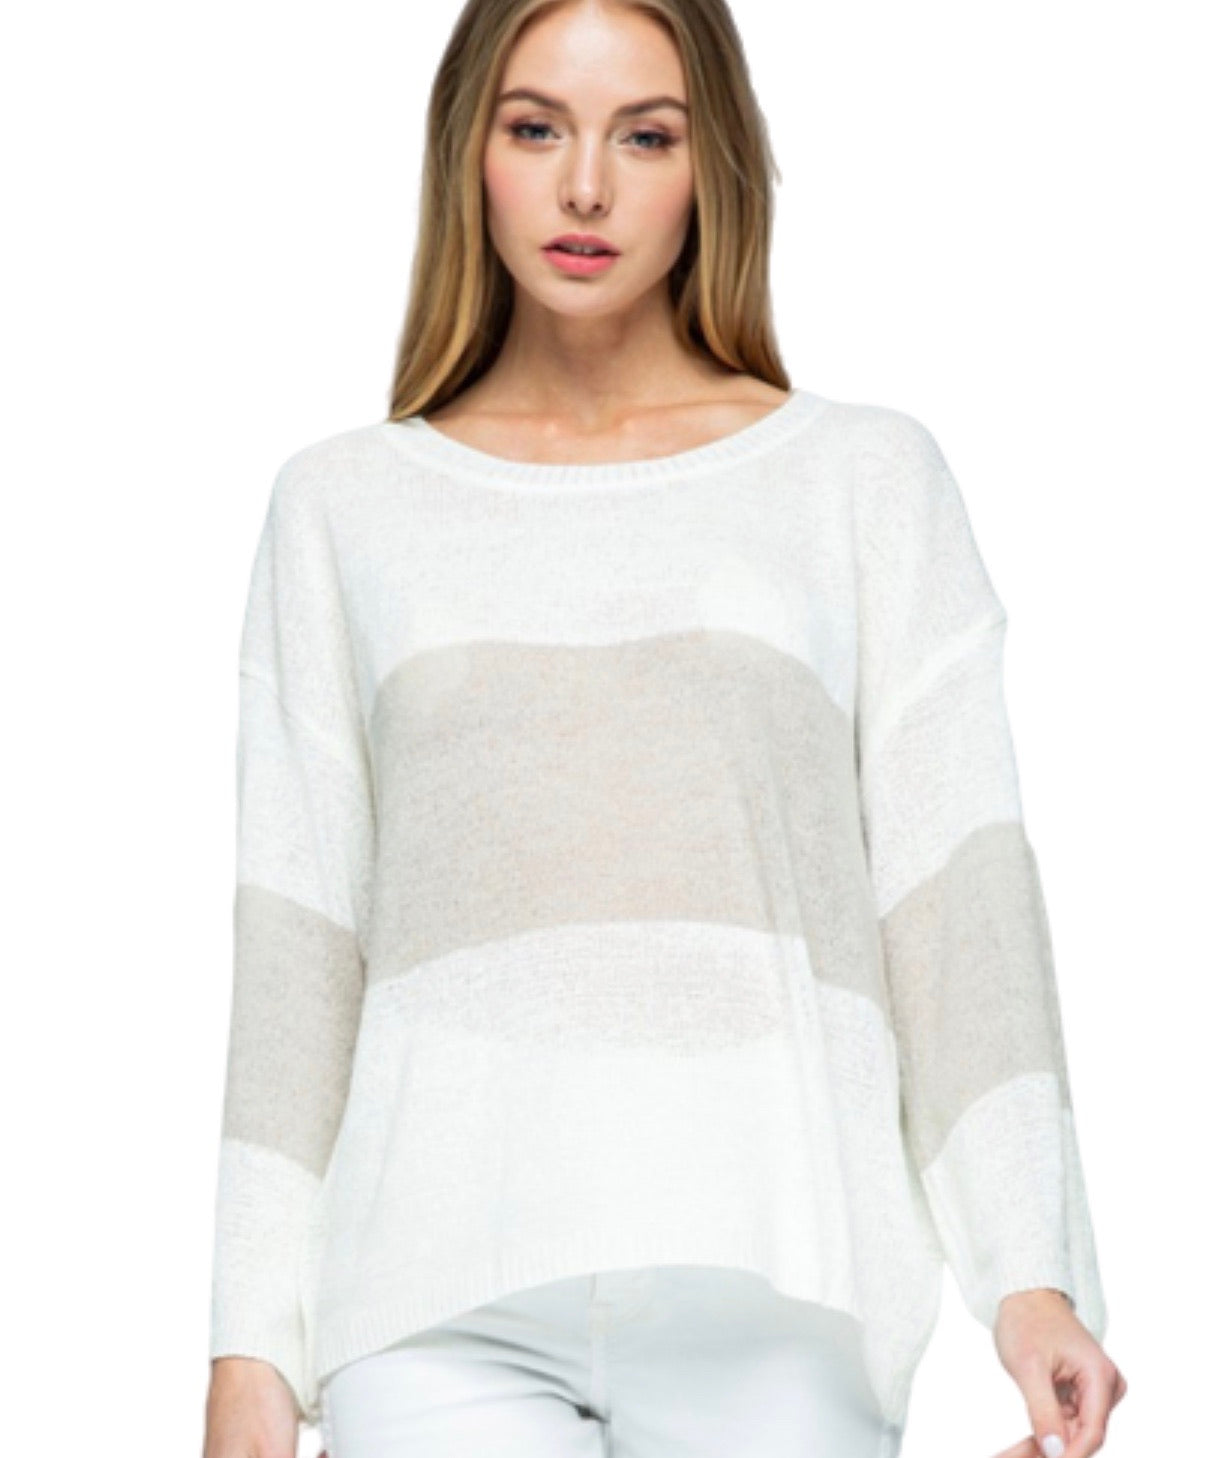 New !  Allison Sweater - Glamco Boutique